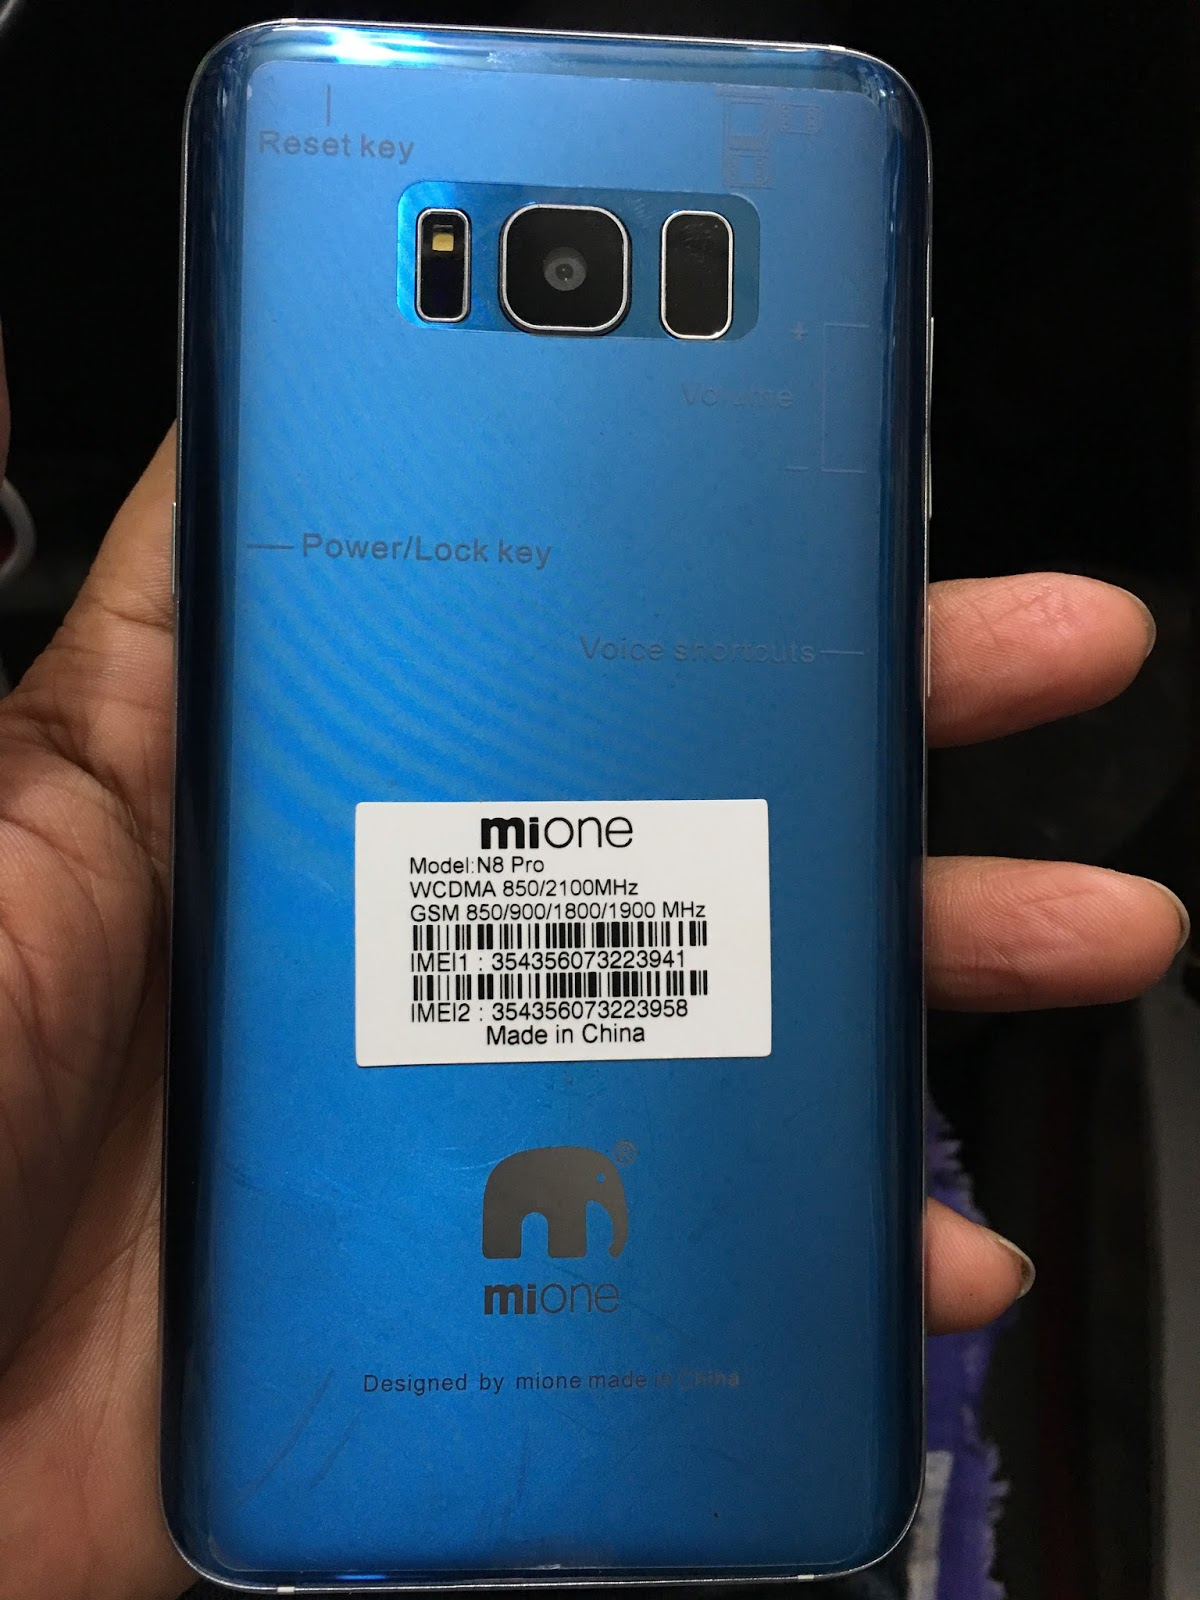 Mione N8 Firmware